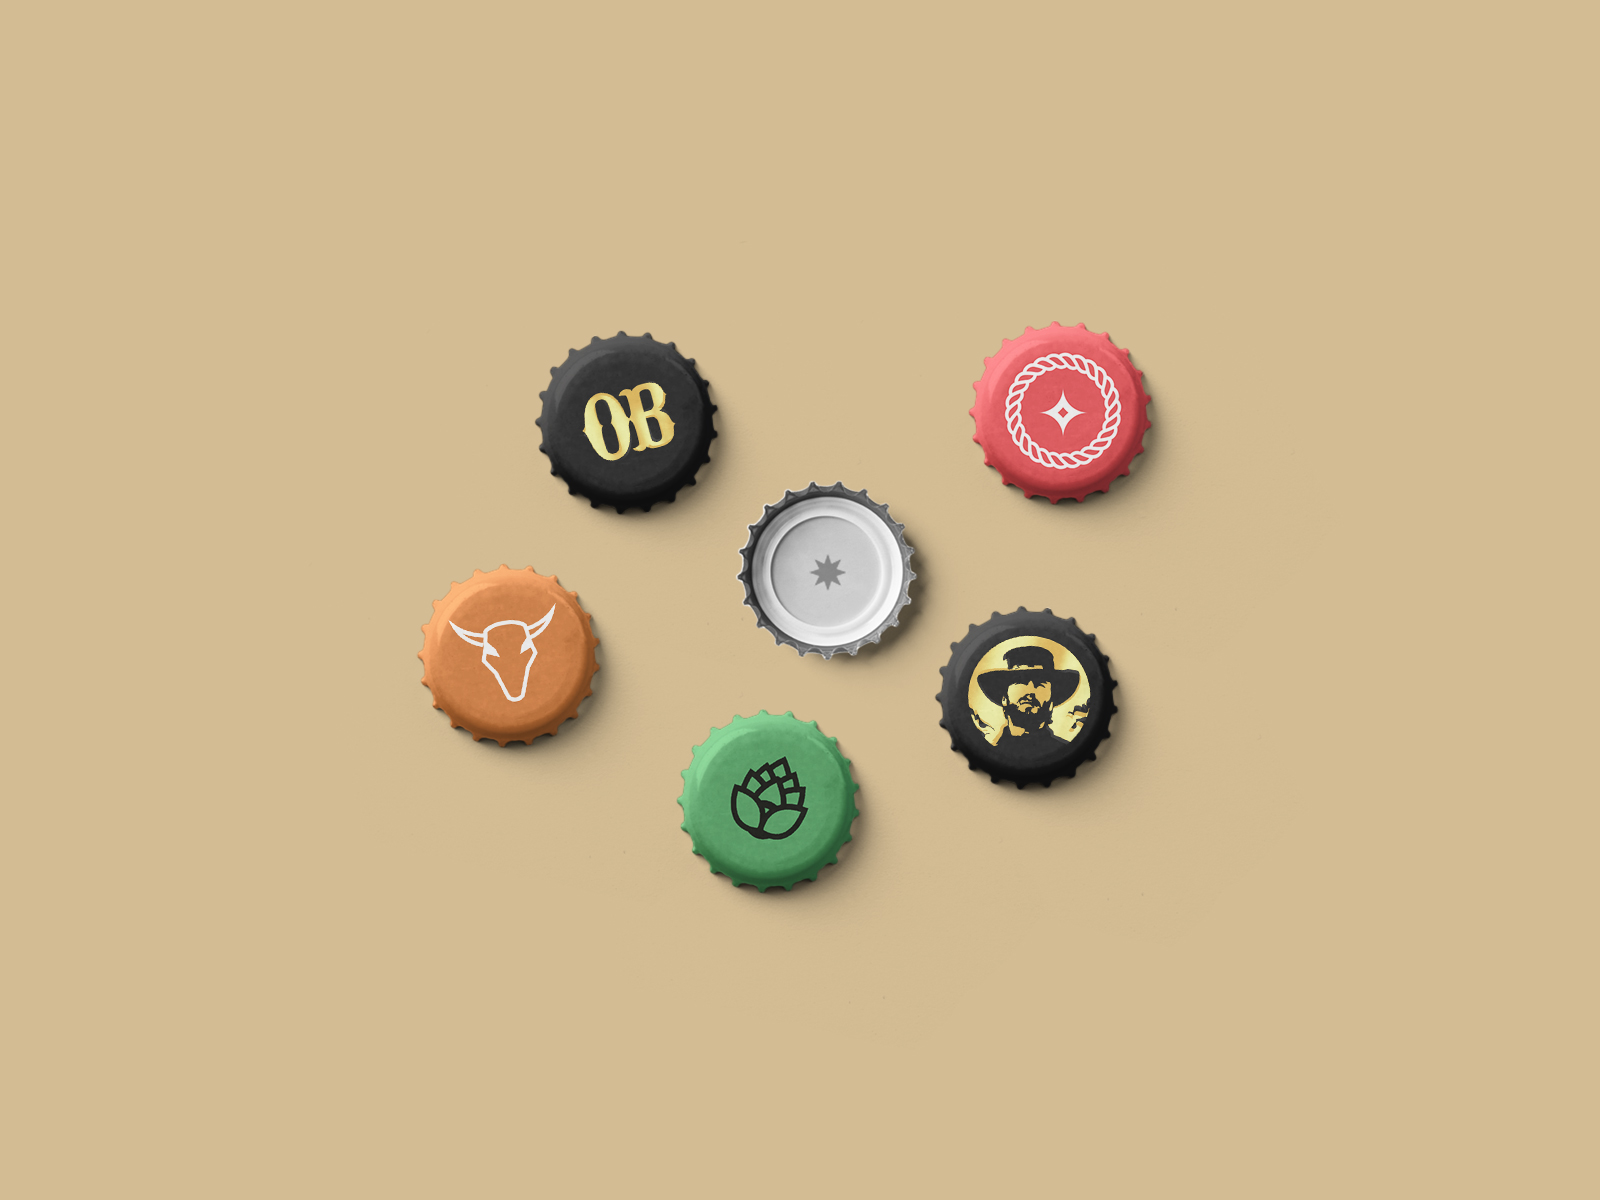 bottle cap design for outlaw brewing